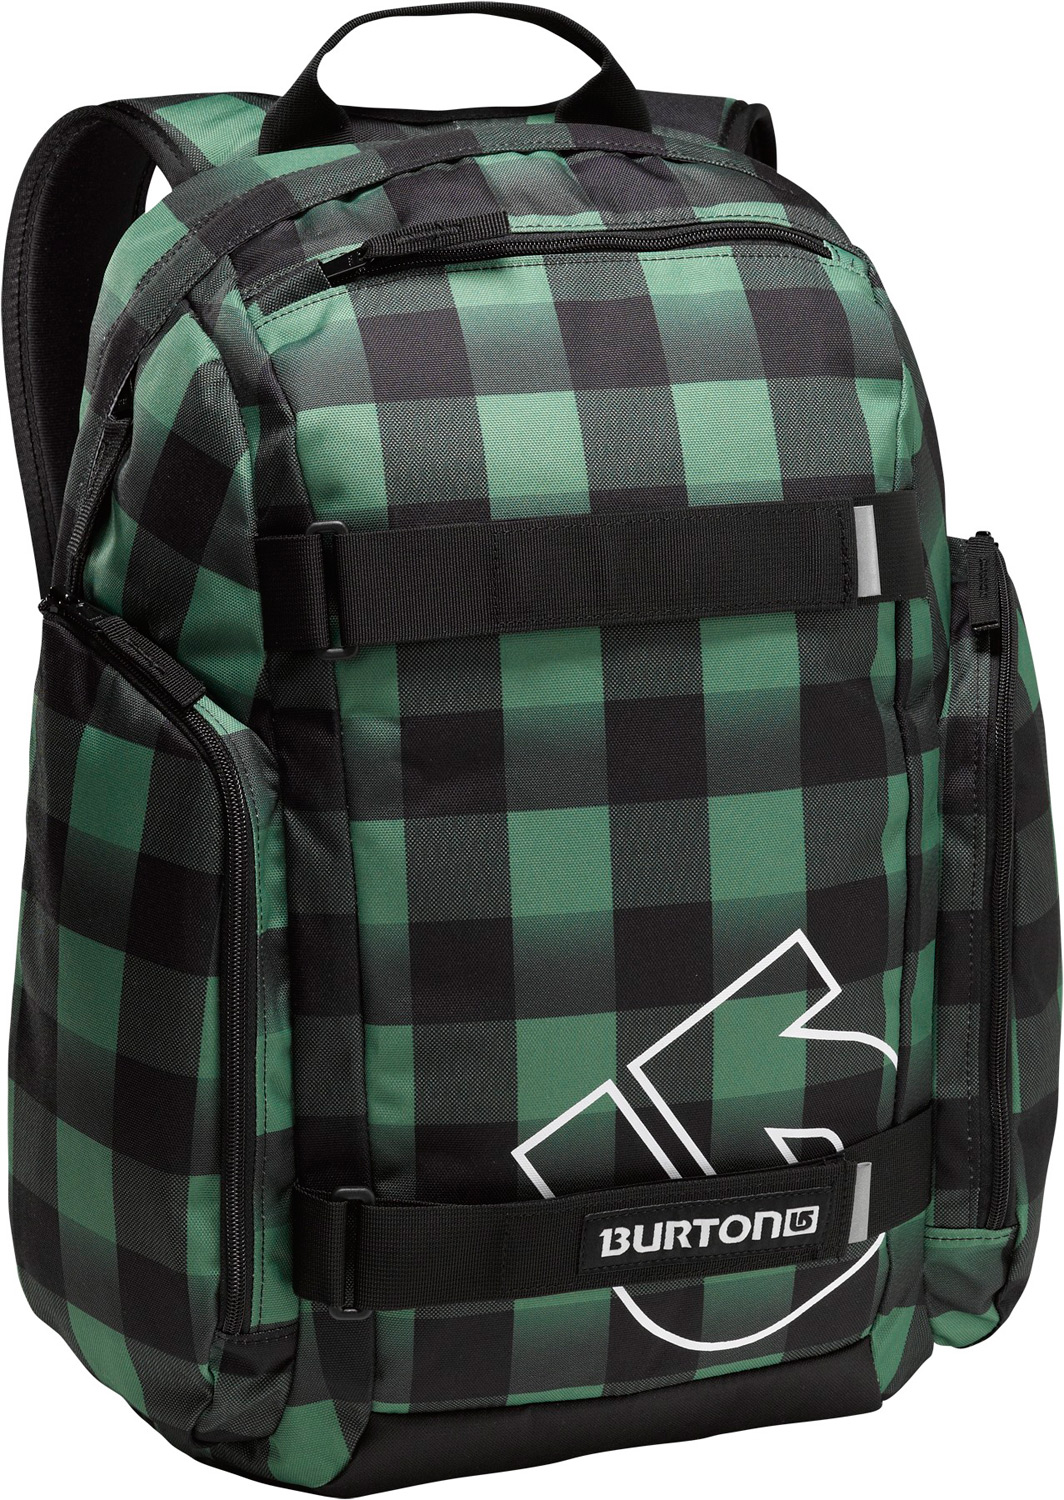 Snowboard Grind it, pump it, pack it-skate pack with built-in cooler.Key Features of the Burton Metalhead SS Backpack: Fabrication: 600D Polyester / 300D Polyester Dobby Padded Laptop Pocket [11.5 in. x 10 in. x 1.5 in.] [29cm x 26cm x 4cm] Vertical Skate Carry Separate Cooler Compartment Cush Ergonomic Shoulder Harness with Adjustable Sternum Strap Fleece-Lined Sound Pocket - $30.36